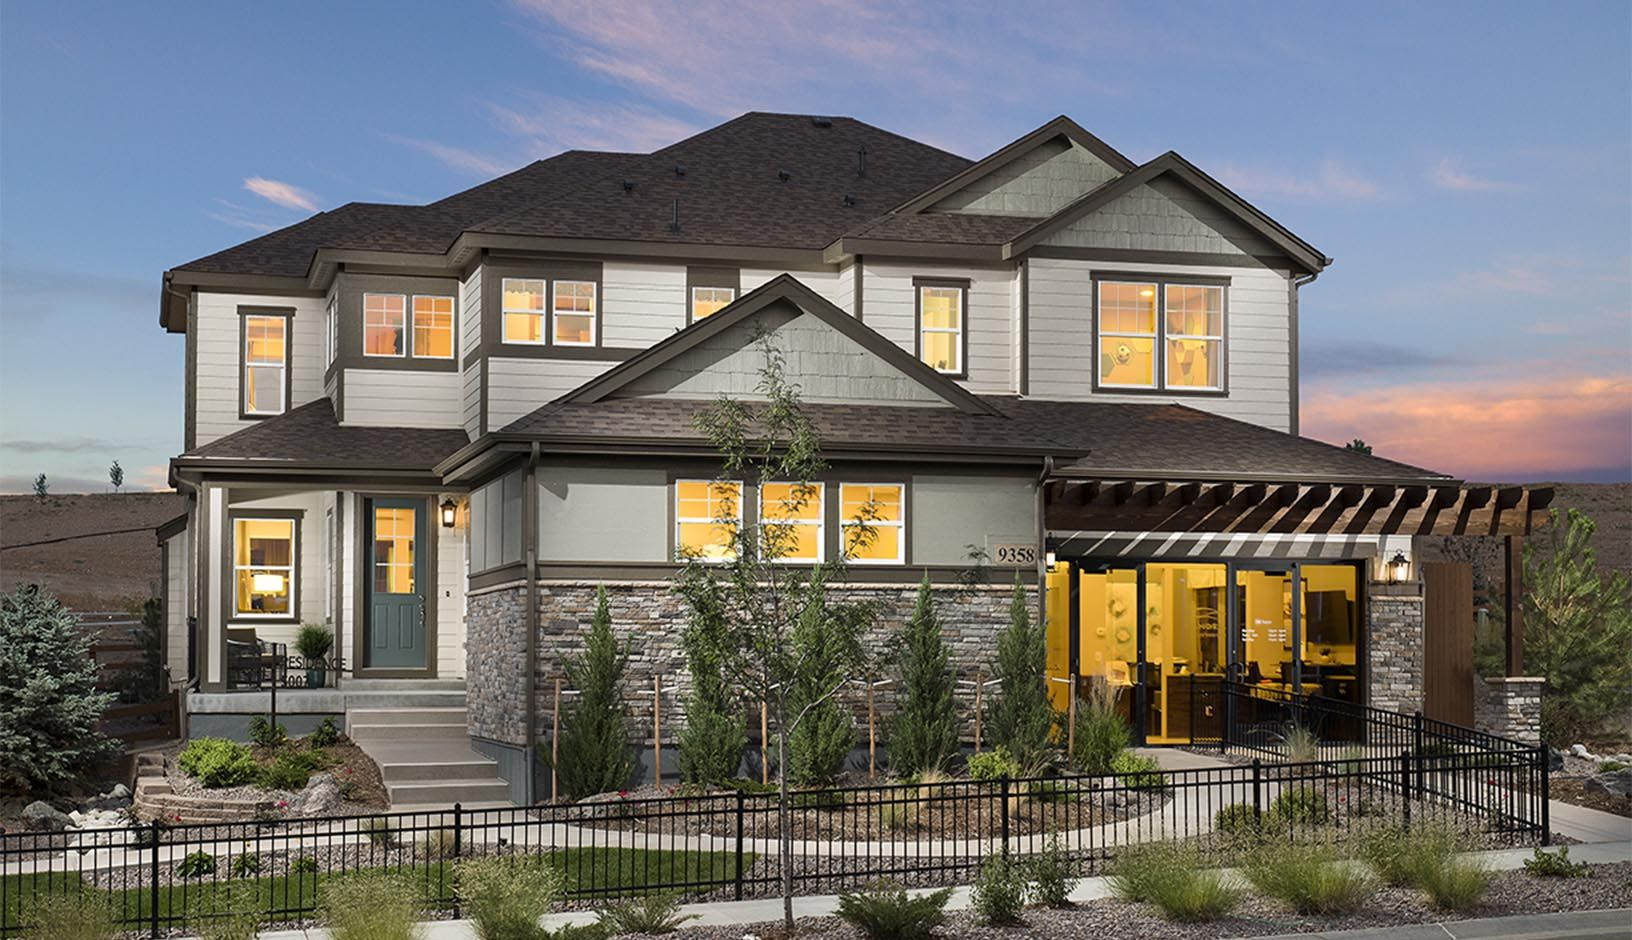 Single Family for Sale at Residence 5005 18463 W 92nd Lane Arvada, Colorado 80007 United States